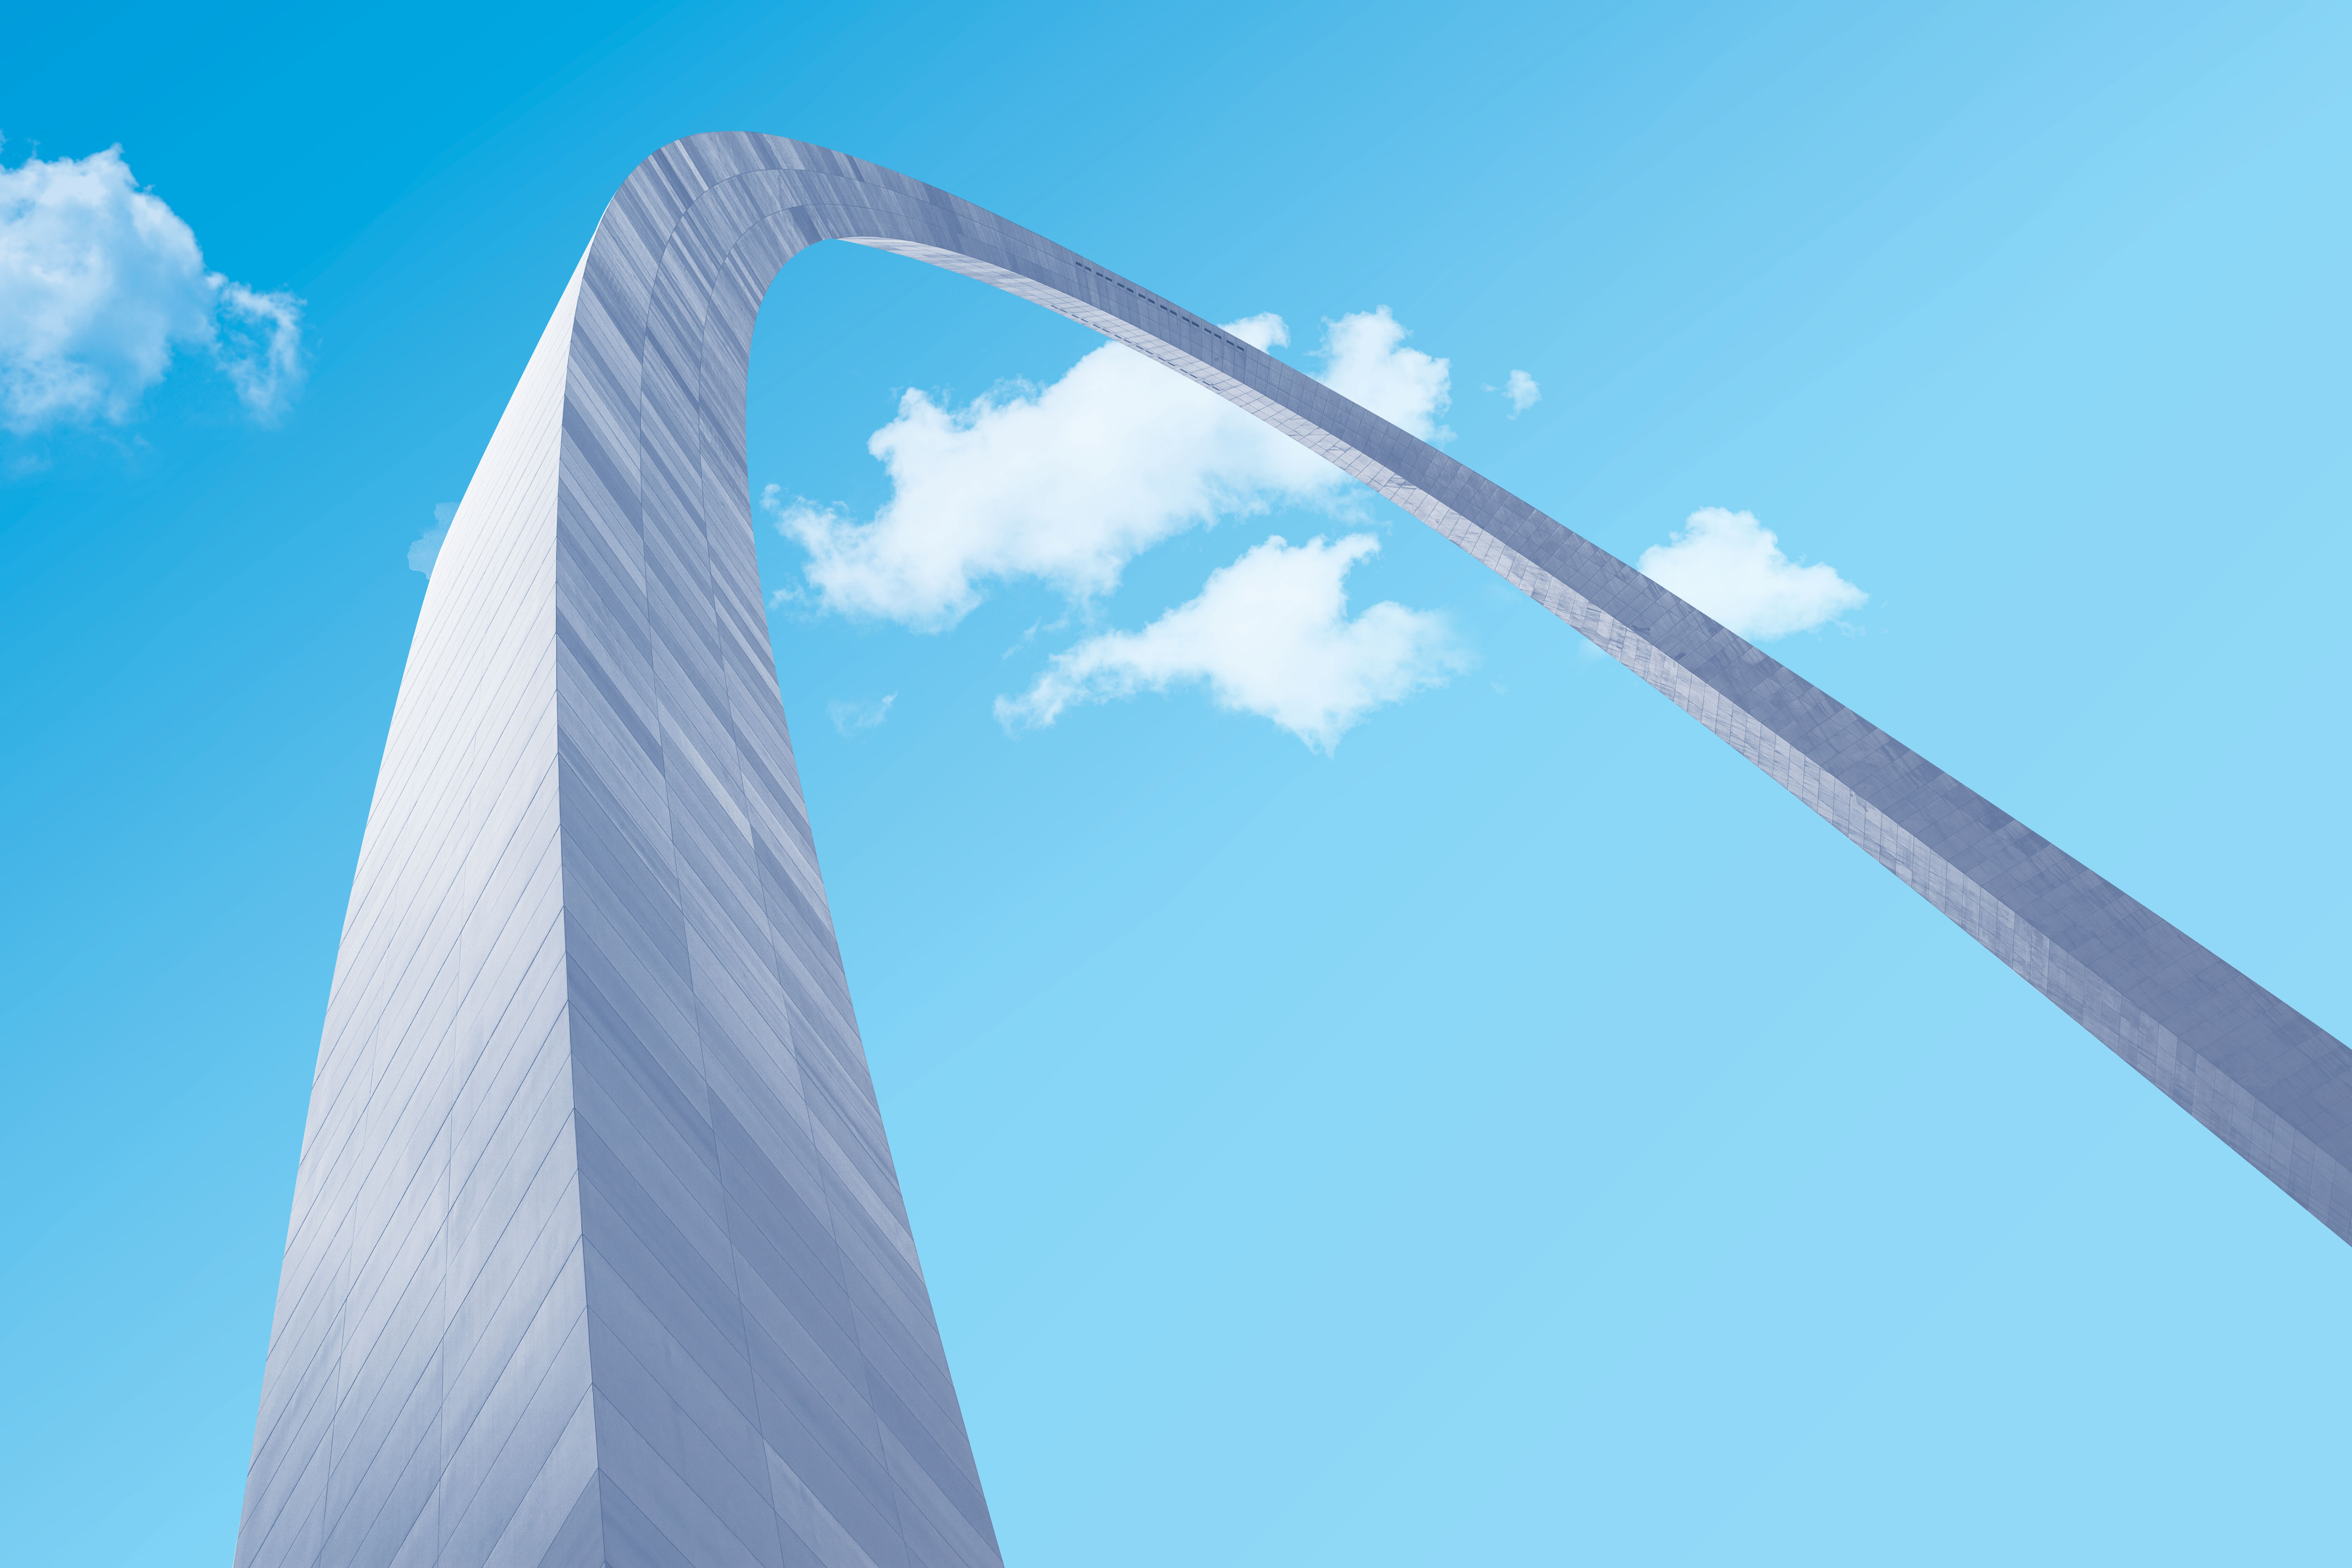 A picture of the St. Louis Arch taken from below against a clear blue sky.